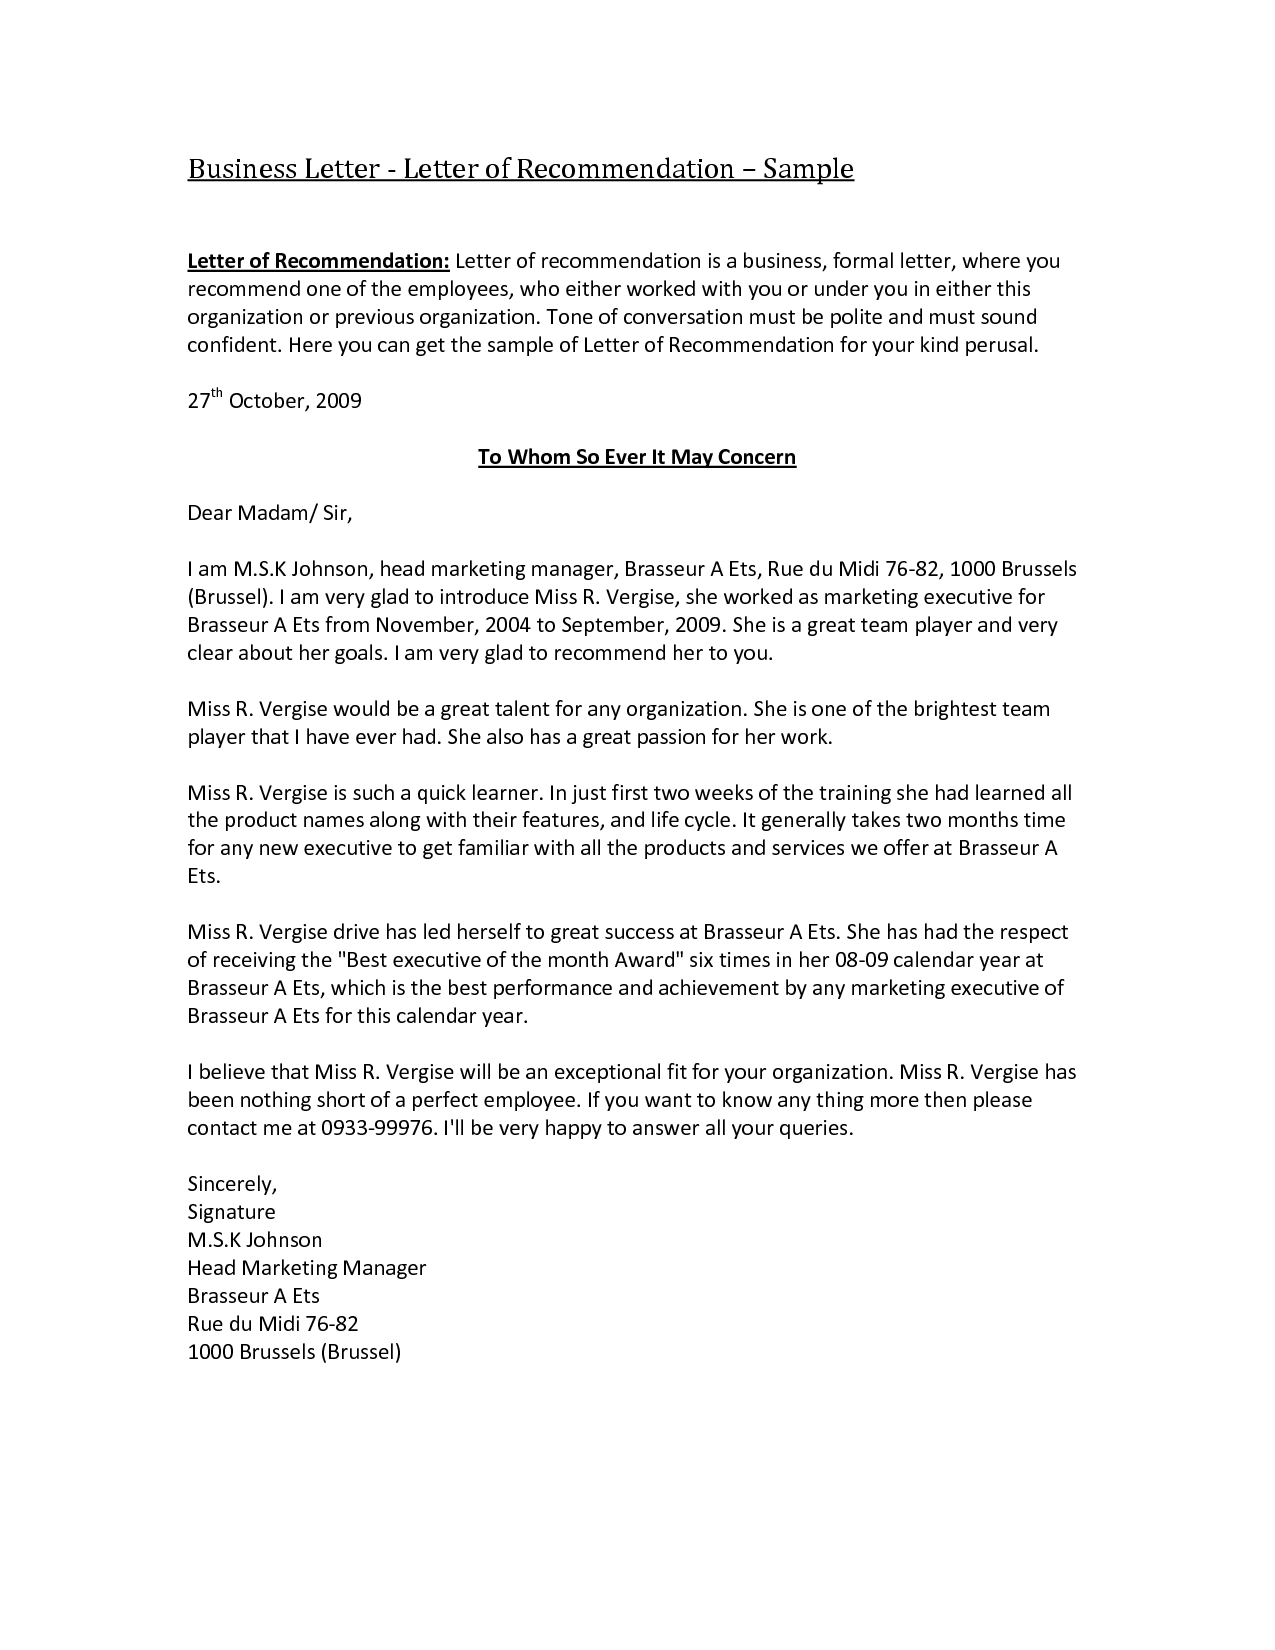 Personal Letter Of Recommendation for A Friend Template - Business Re Mendation Letter Template Acurnamedia